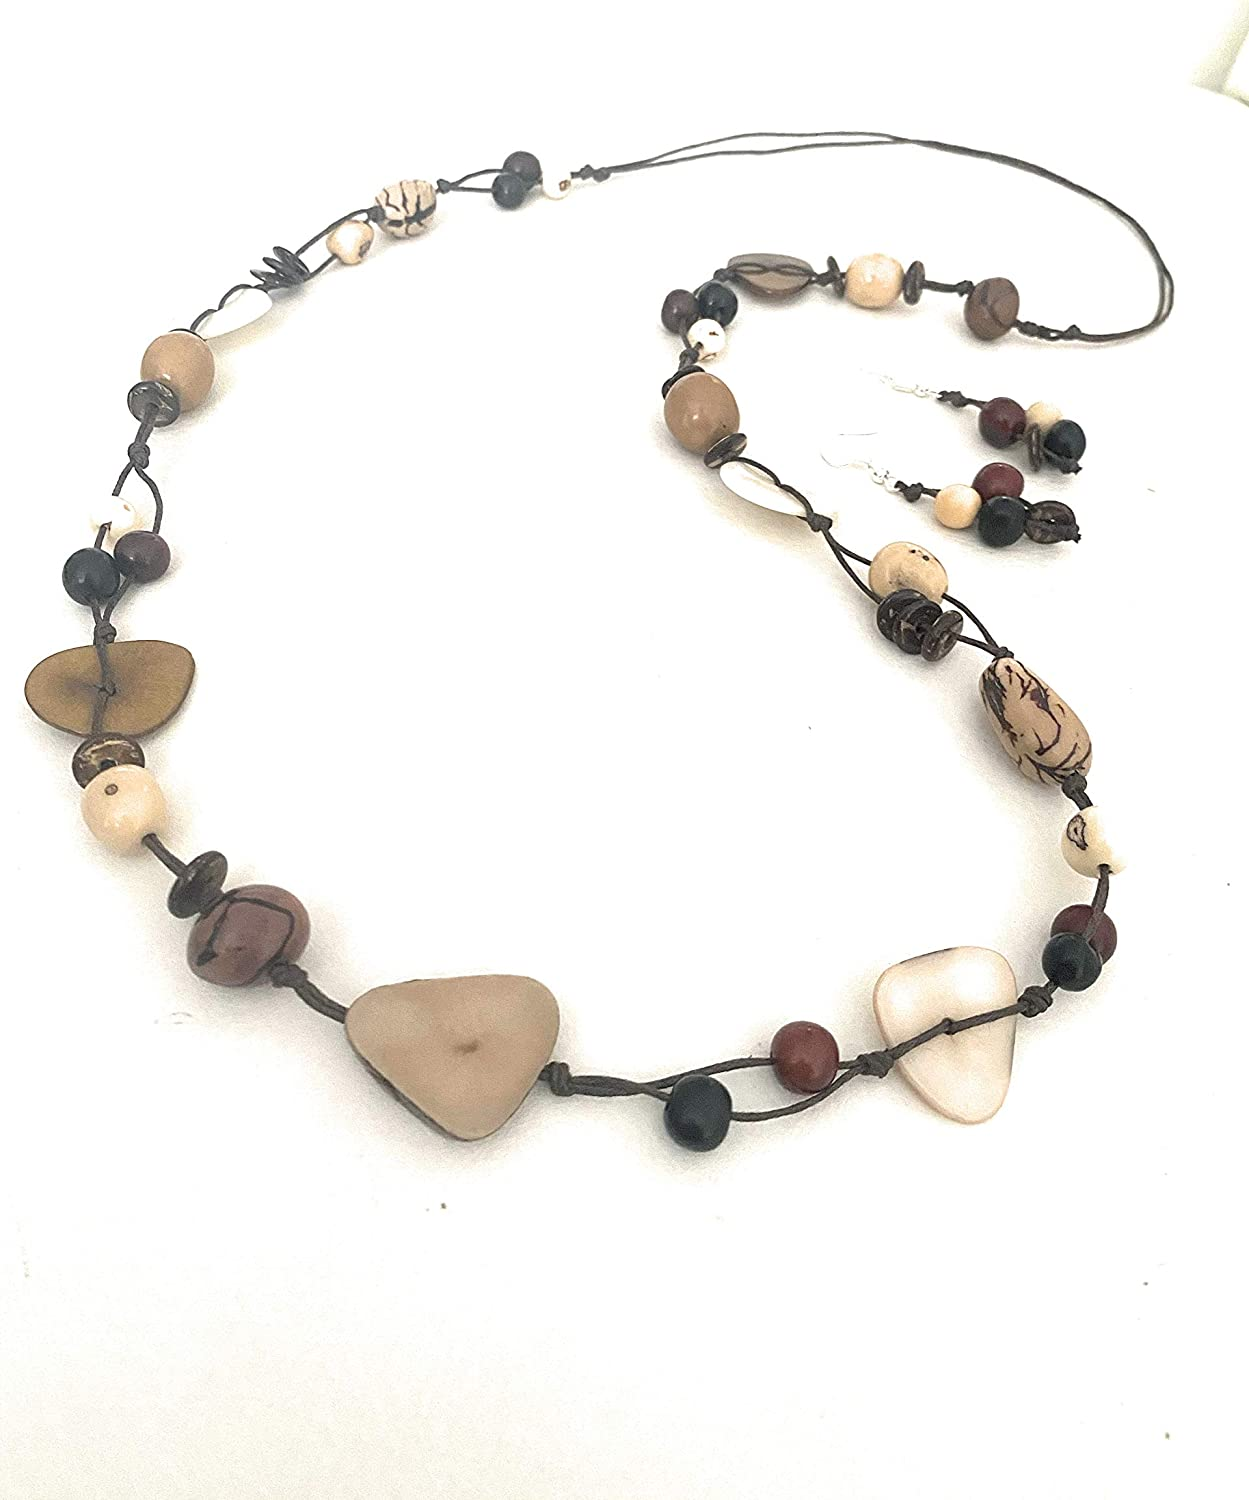 Tagua Nut Necklace Long Tagua Necklace and Earrings in Brown, Beige and Brown TAG541B Set, Vegetable Ivory Organic Handmade Tagua Nut Jewelry